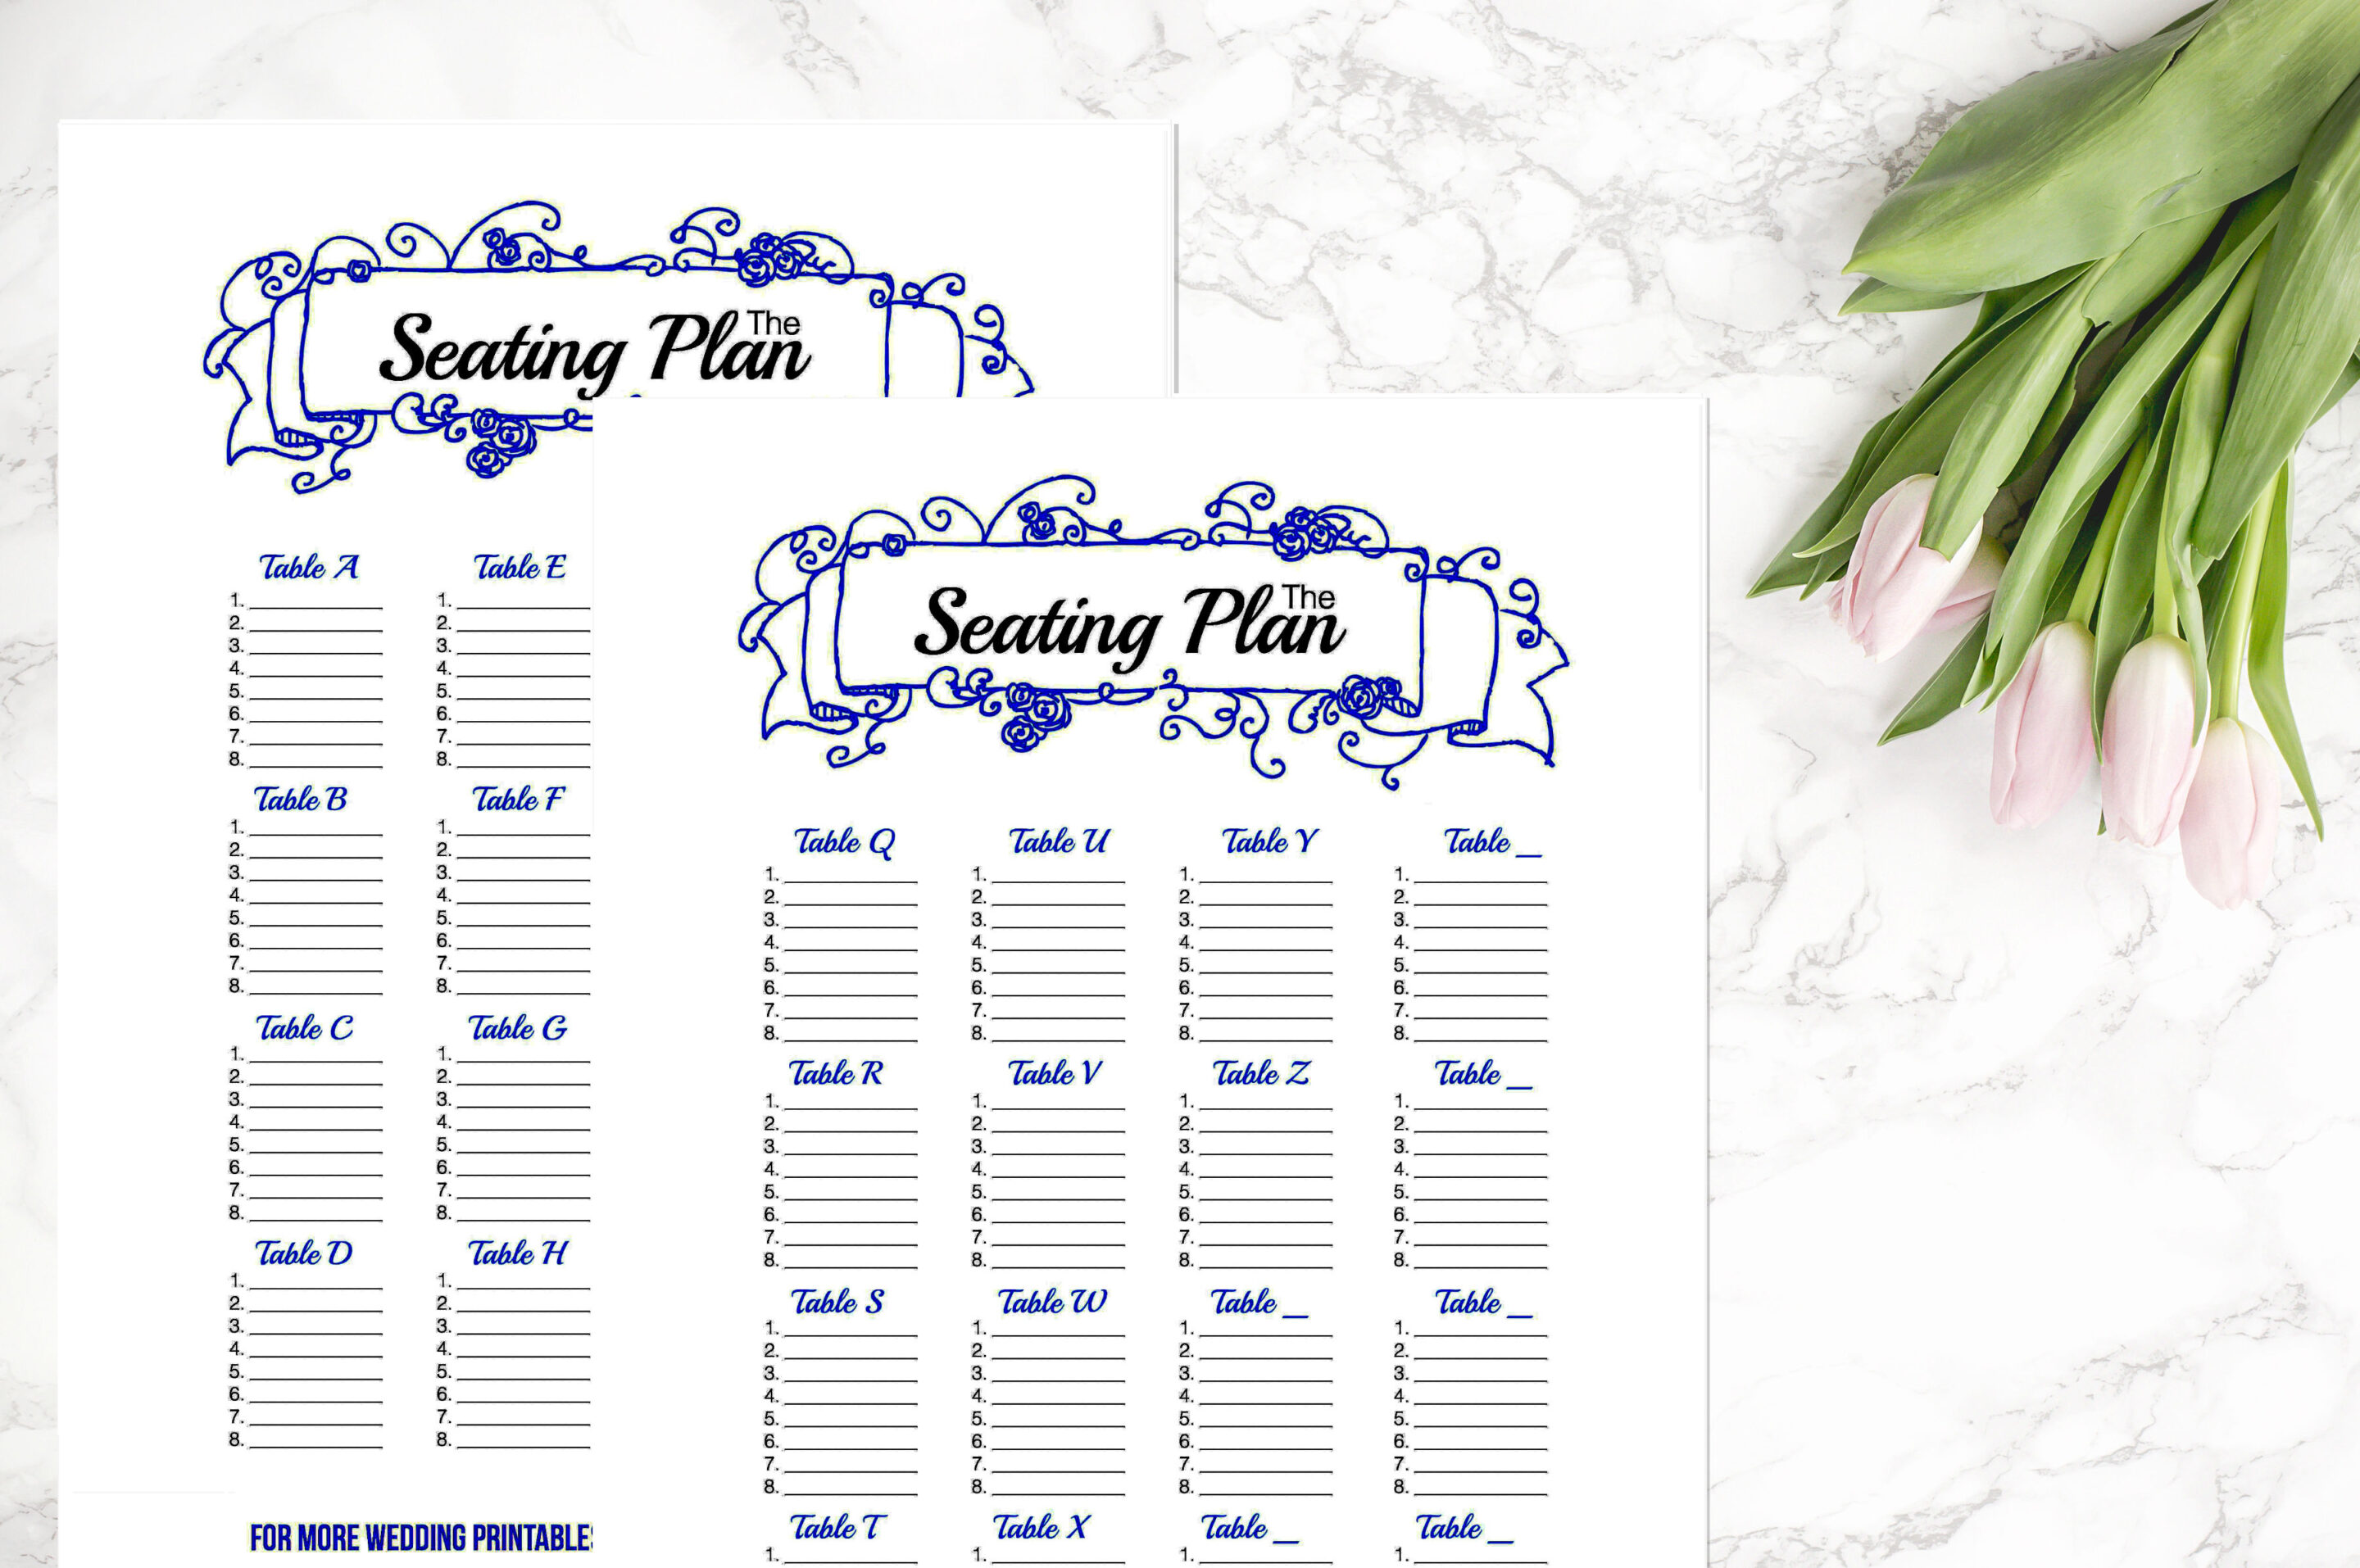 Wedding Binder - Royal Blue Seating Chart Plans - Happily ...